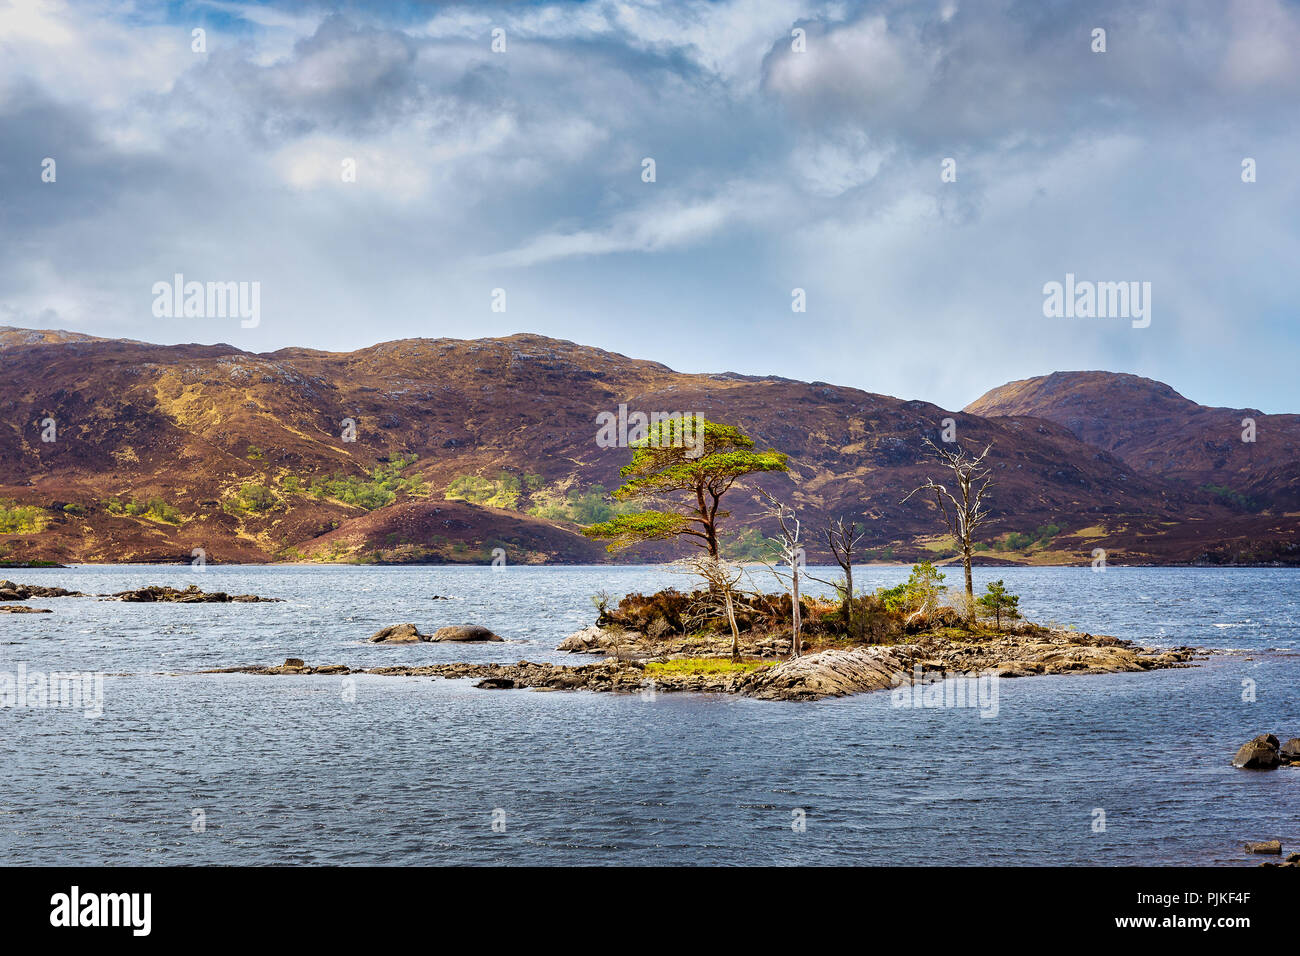 Little islands of Loch Assynt in the scottish highlands near Ardvreck Castle - Stock Image